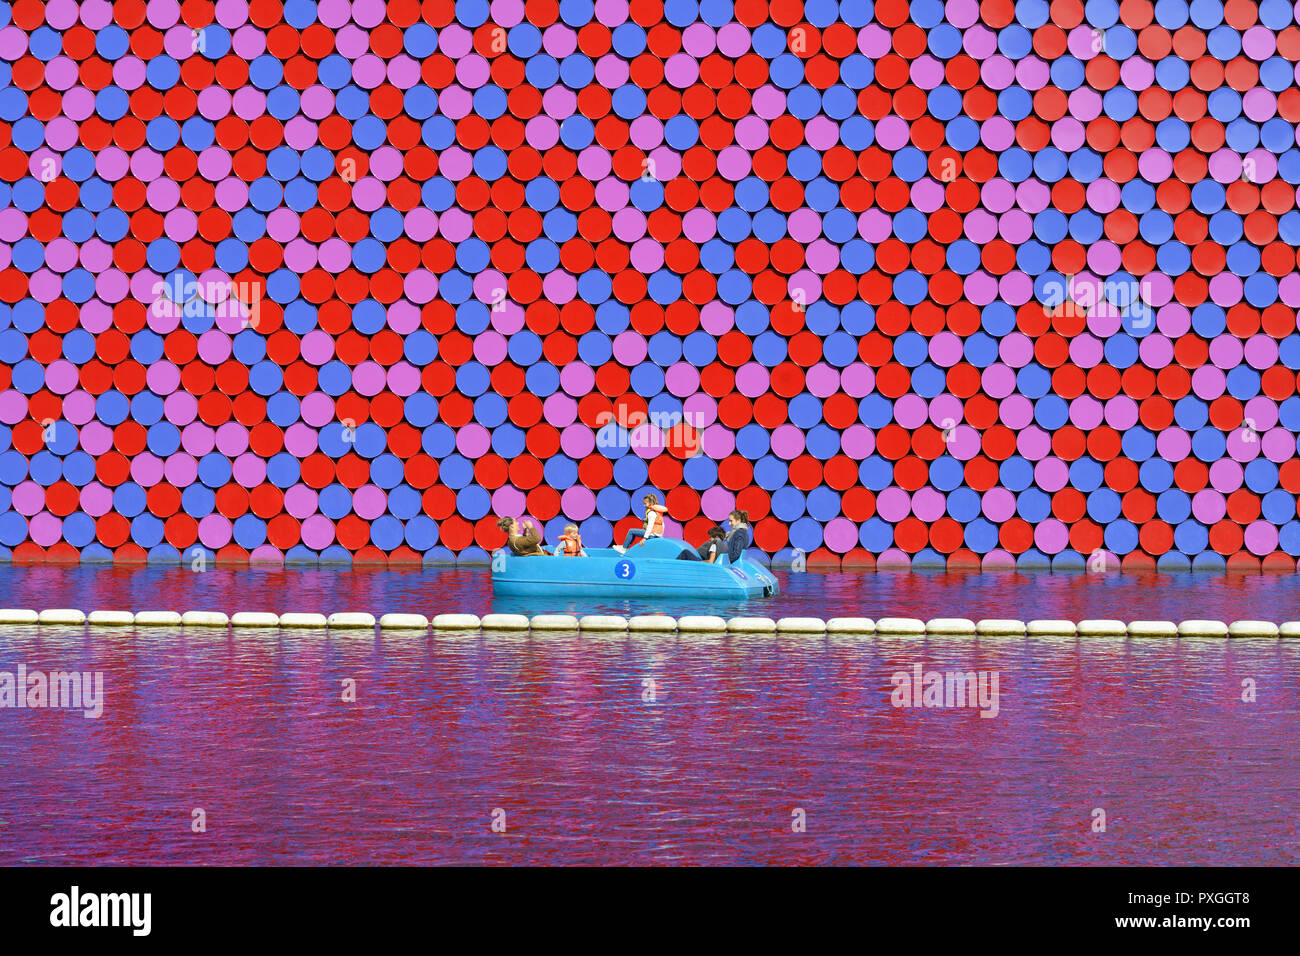 Family boating beside the London Mastaba in the Serpentine, Hyde Park, London, United Kingdom - Stock Image